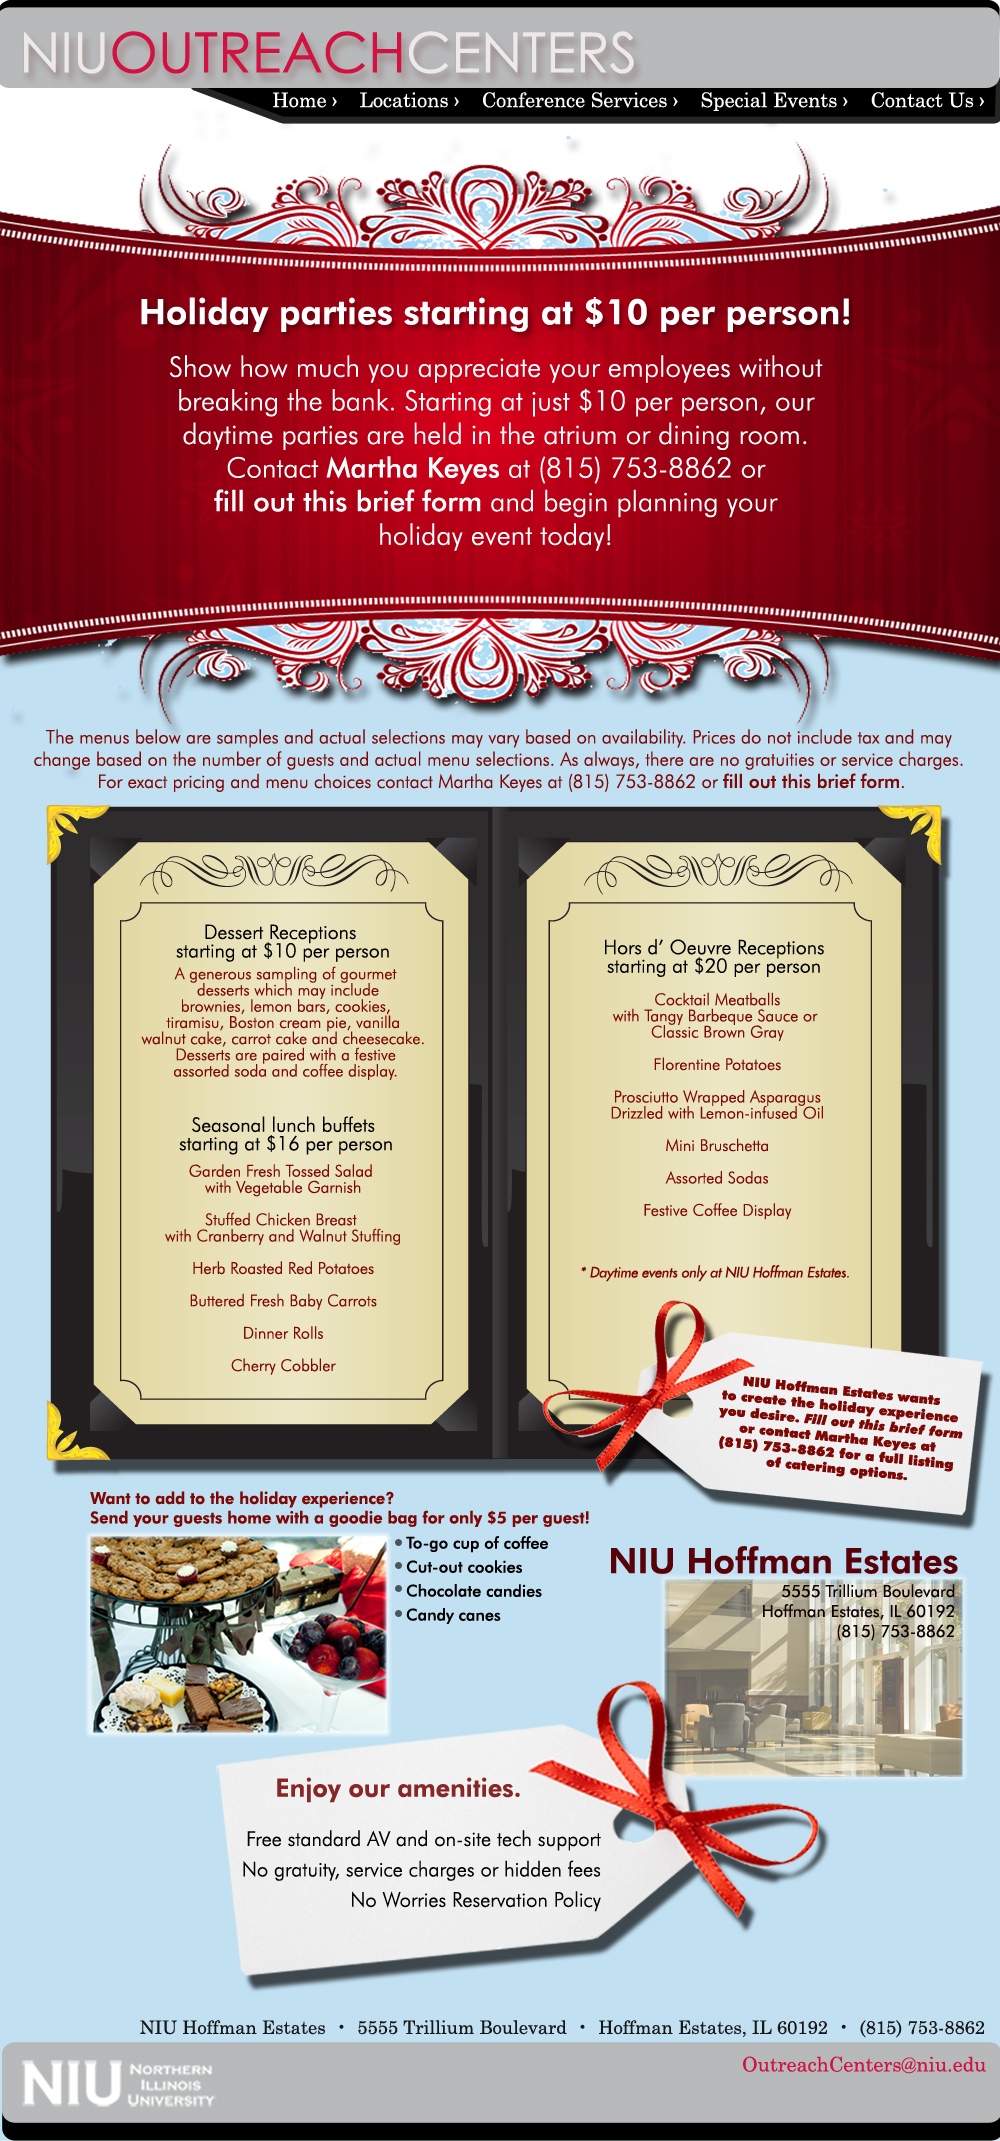 Host your Holiday Party at NIU Hoffman Estates!